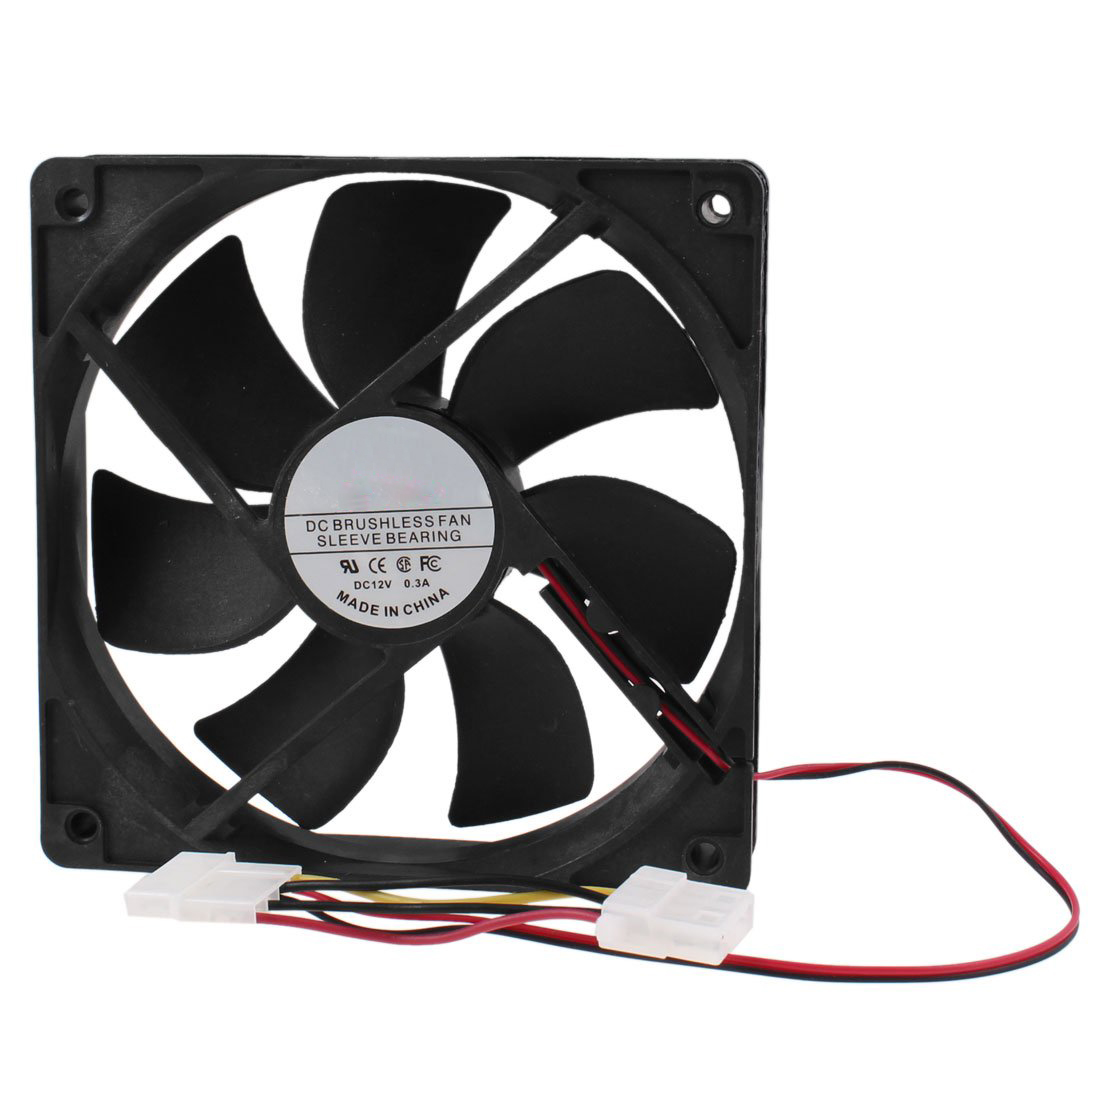 PC Brushless DC Cooling Fan 4 Pin Connector 7 Blades 12V 12cm 120mm qqv6 aluminum alloy 11 blade cooling fan for graphics card silver 12cm